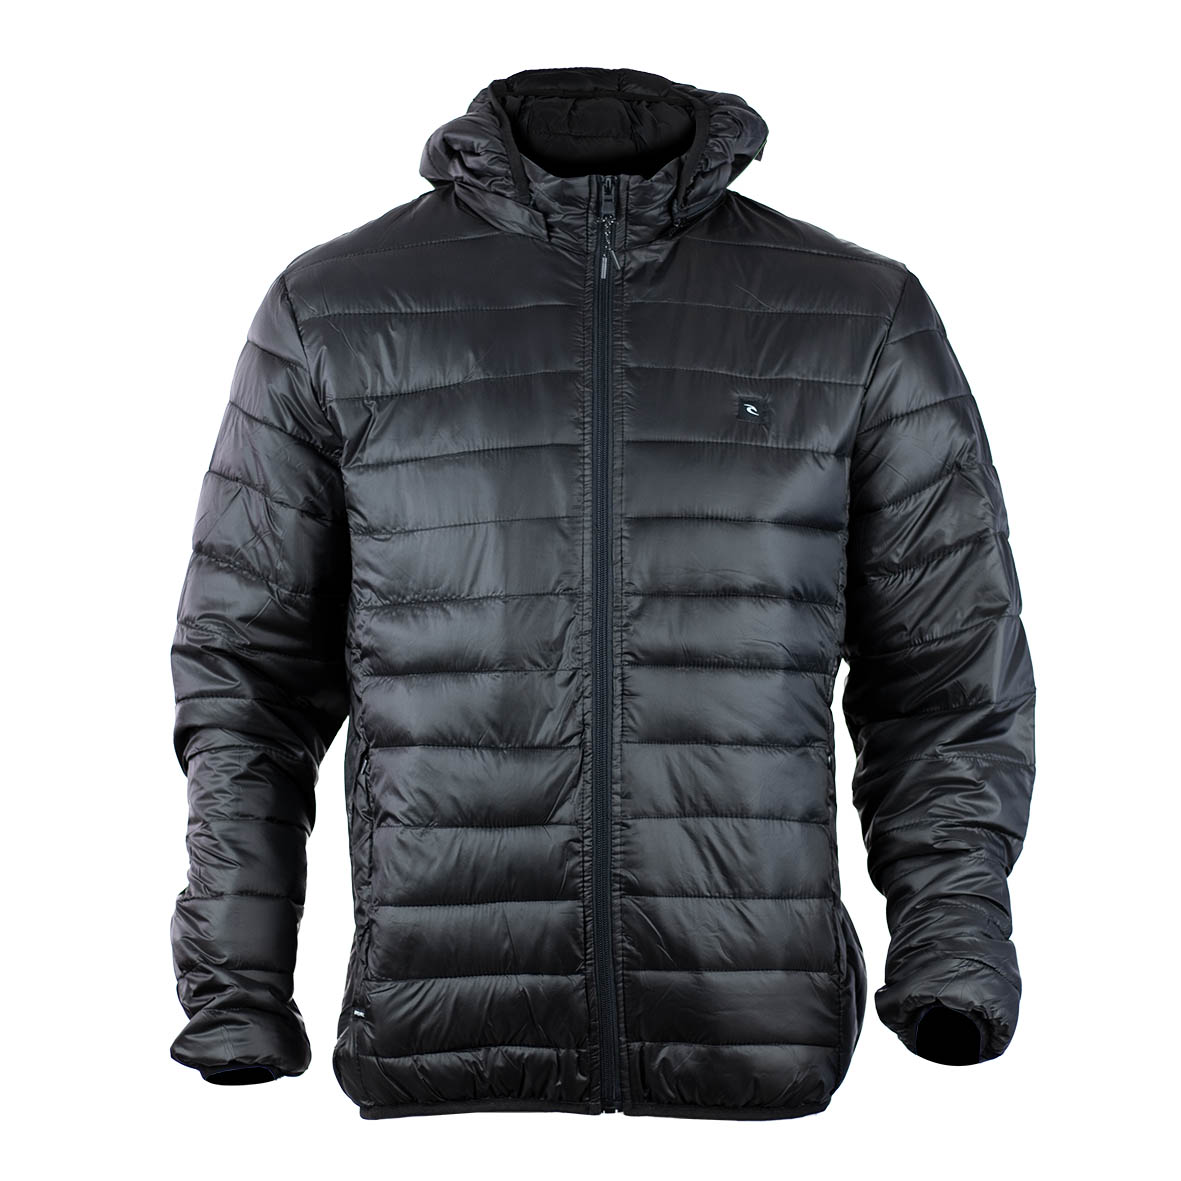 THE SEARCH RIP CURL PUFFER JACKET